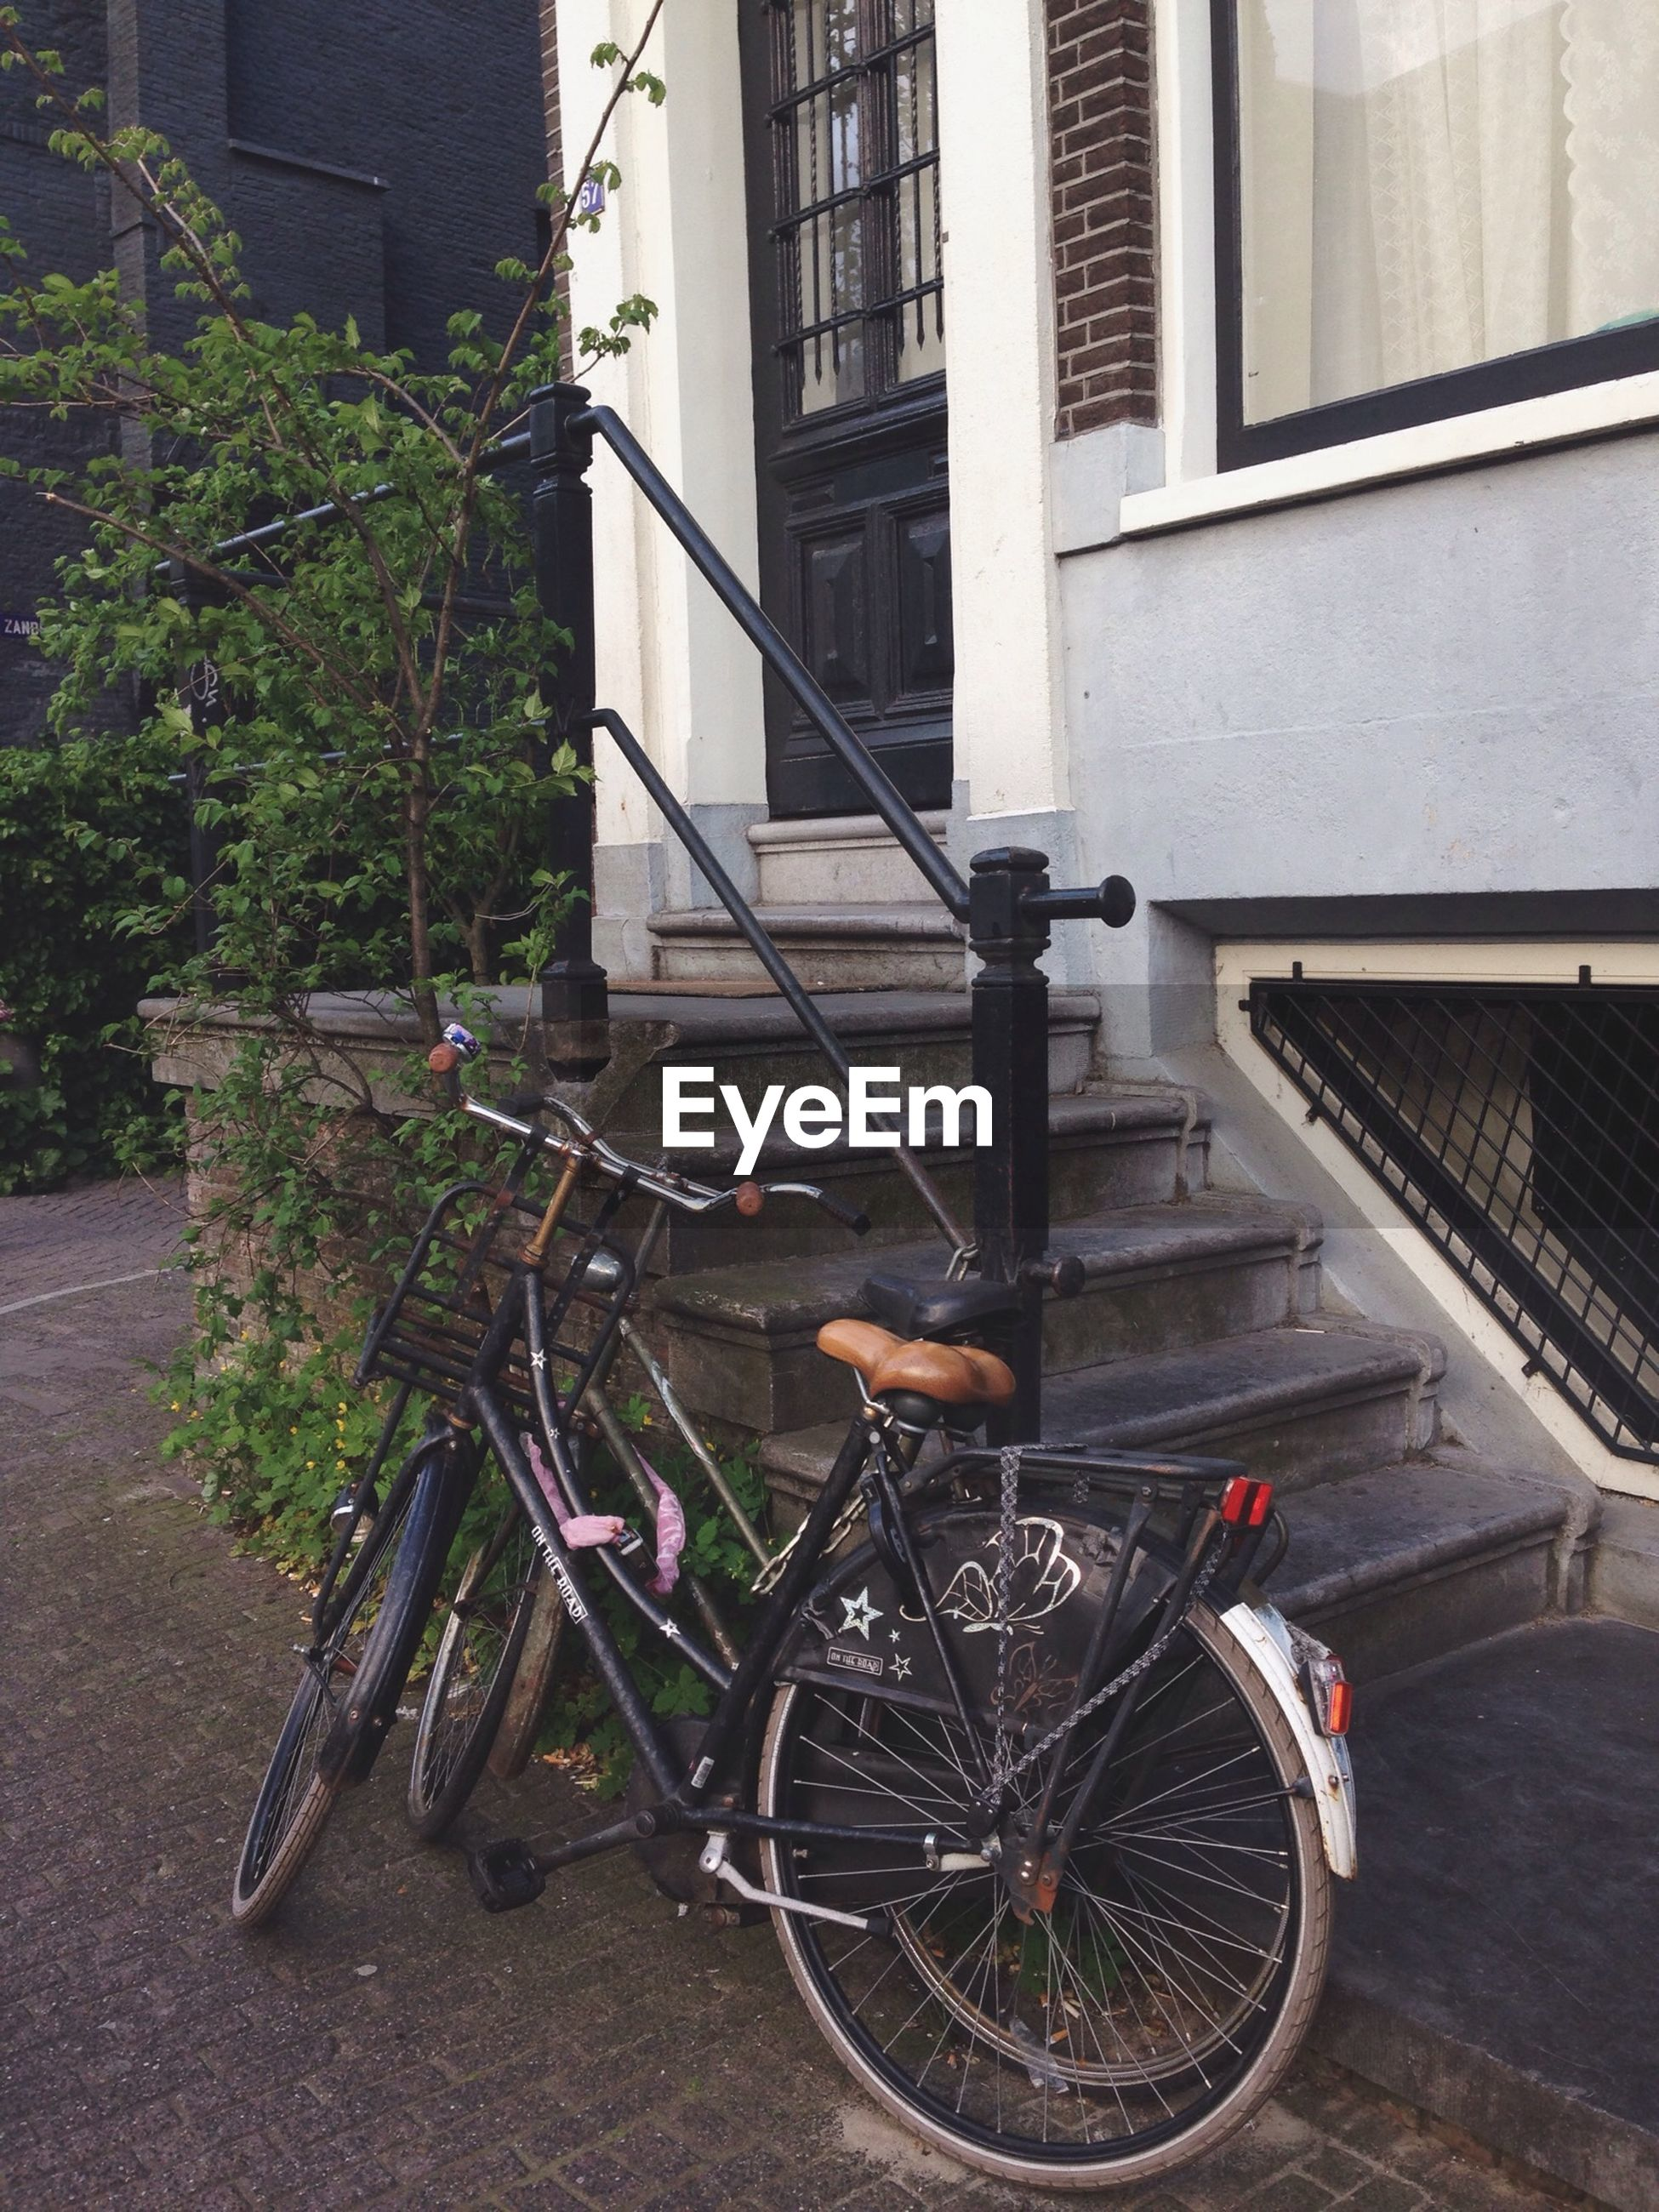 bicycle, building exterior, architecture, built structure, transportation, land vehicle, mode of transport, city, building, parked, street, stationary, parking, day, outdoors, wall - building feature, window, residential building